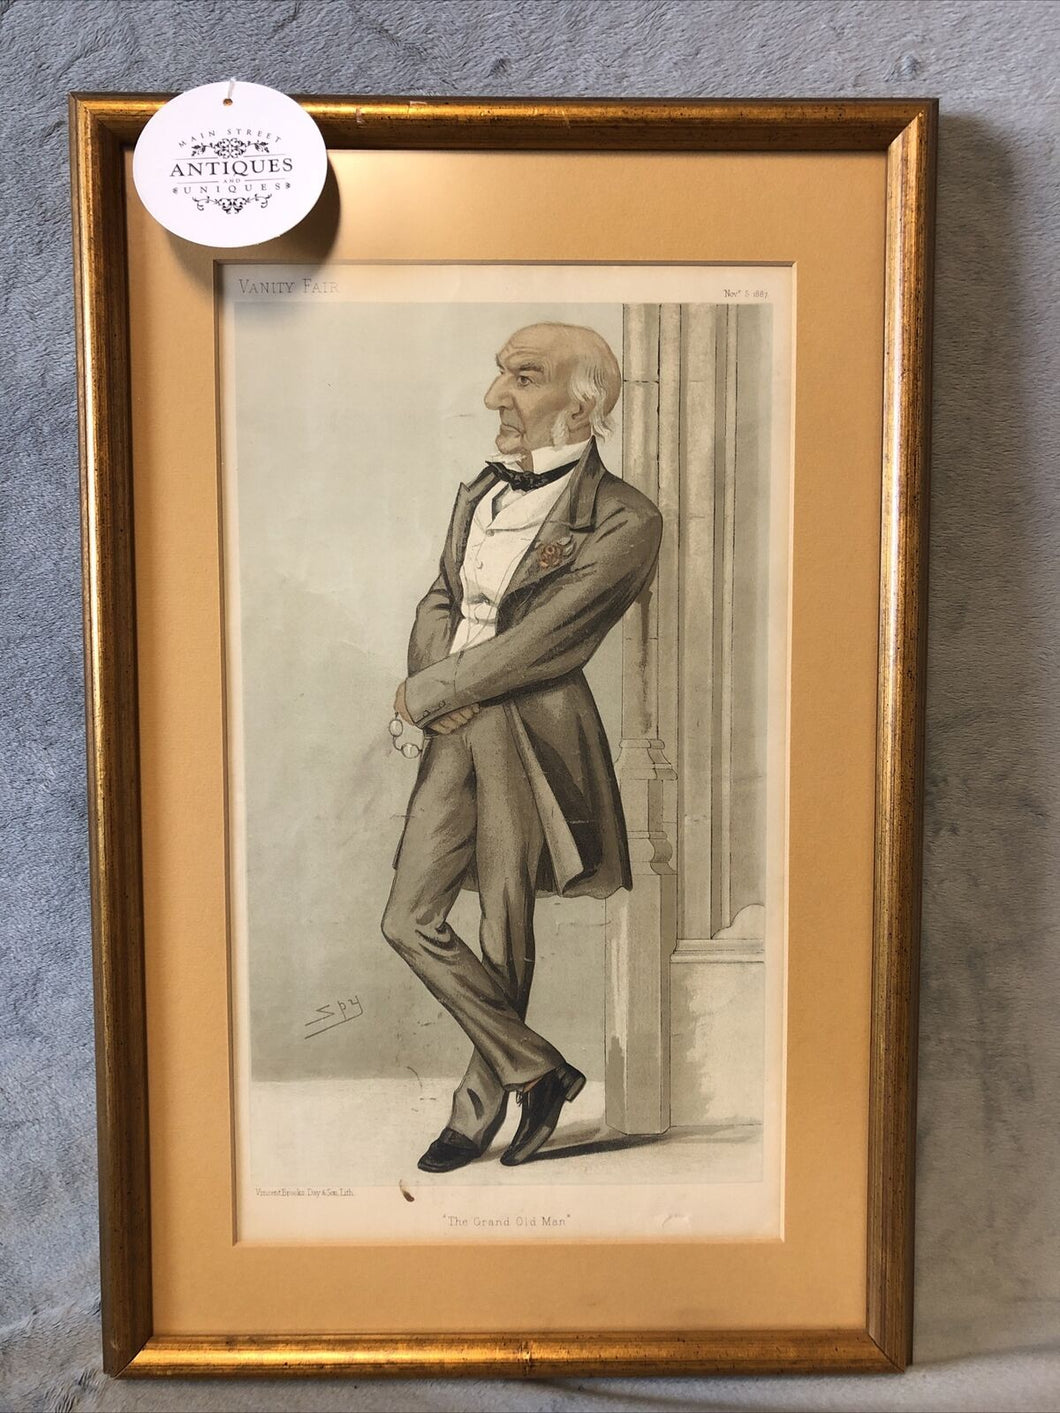 Antique Vanity Fair Nov 5th 1887 The Grand Old Man Lithograph Spy Series